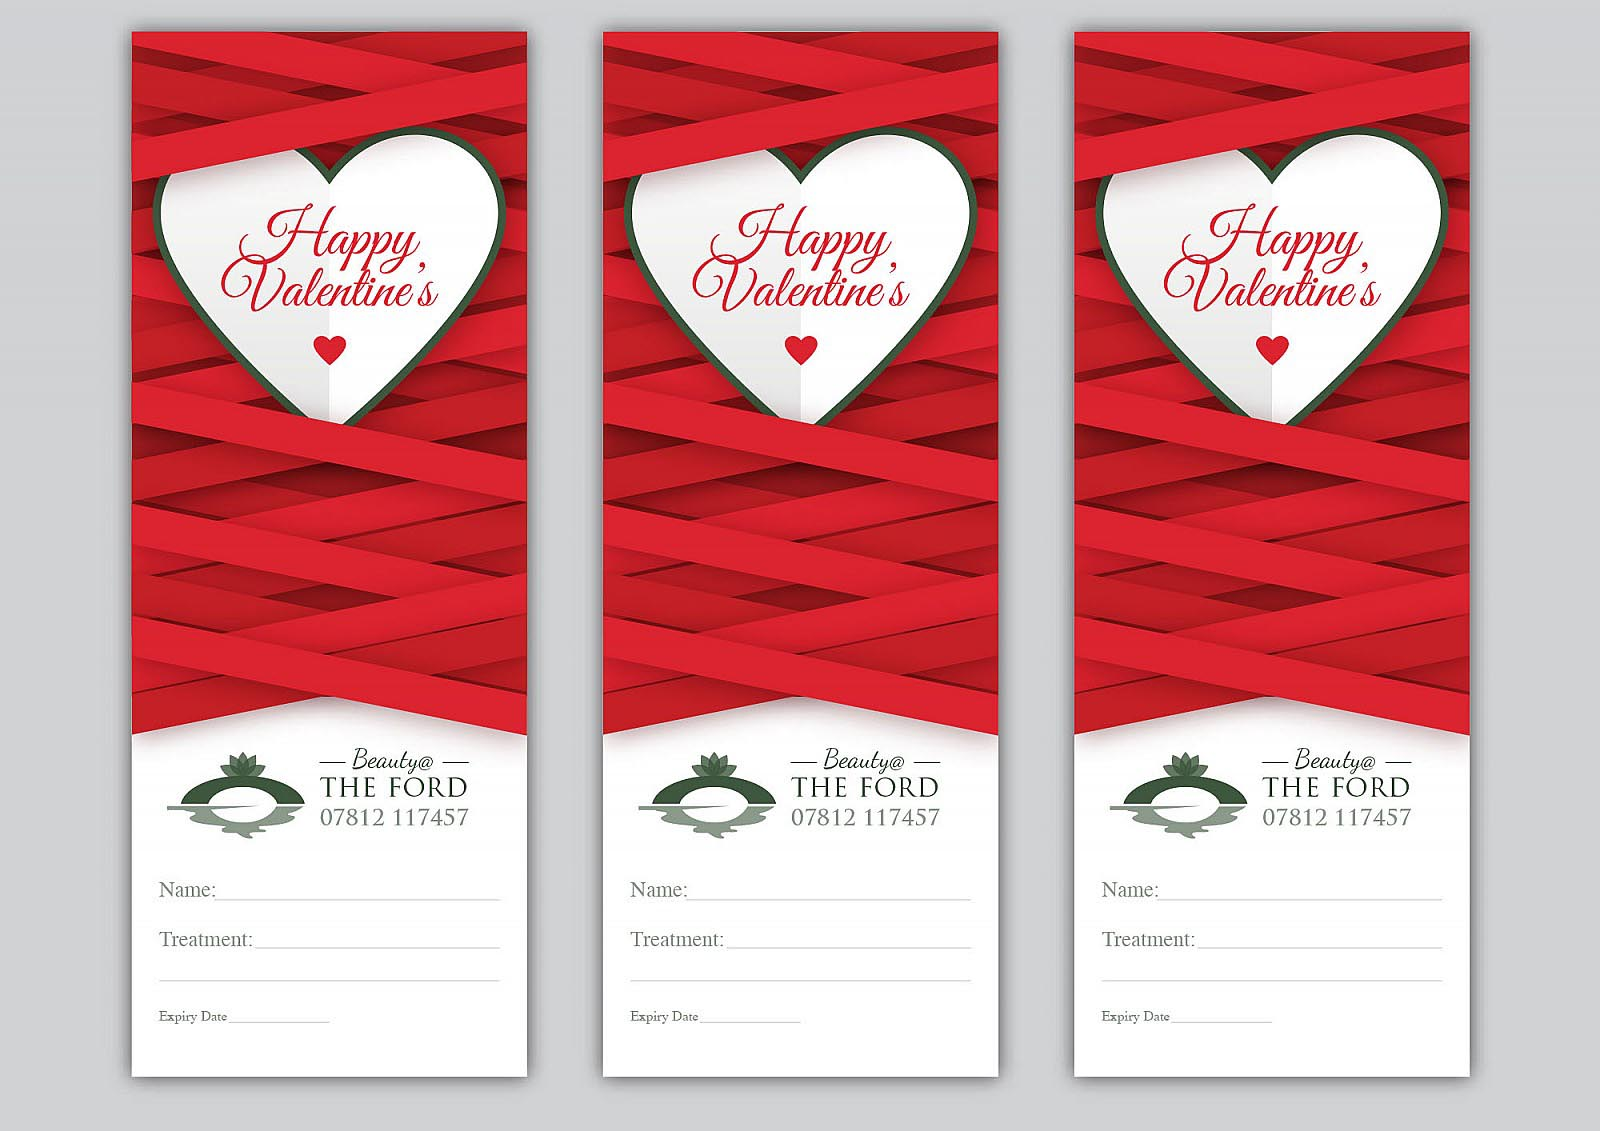 Beauty @ The Ford - Valentines Day Vouchers